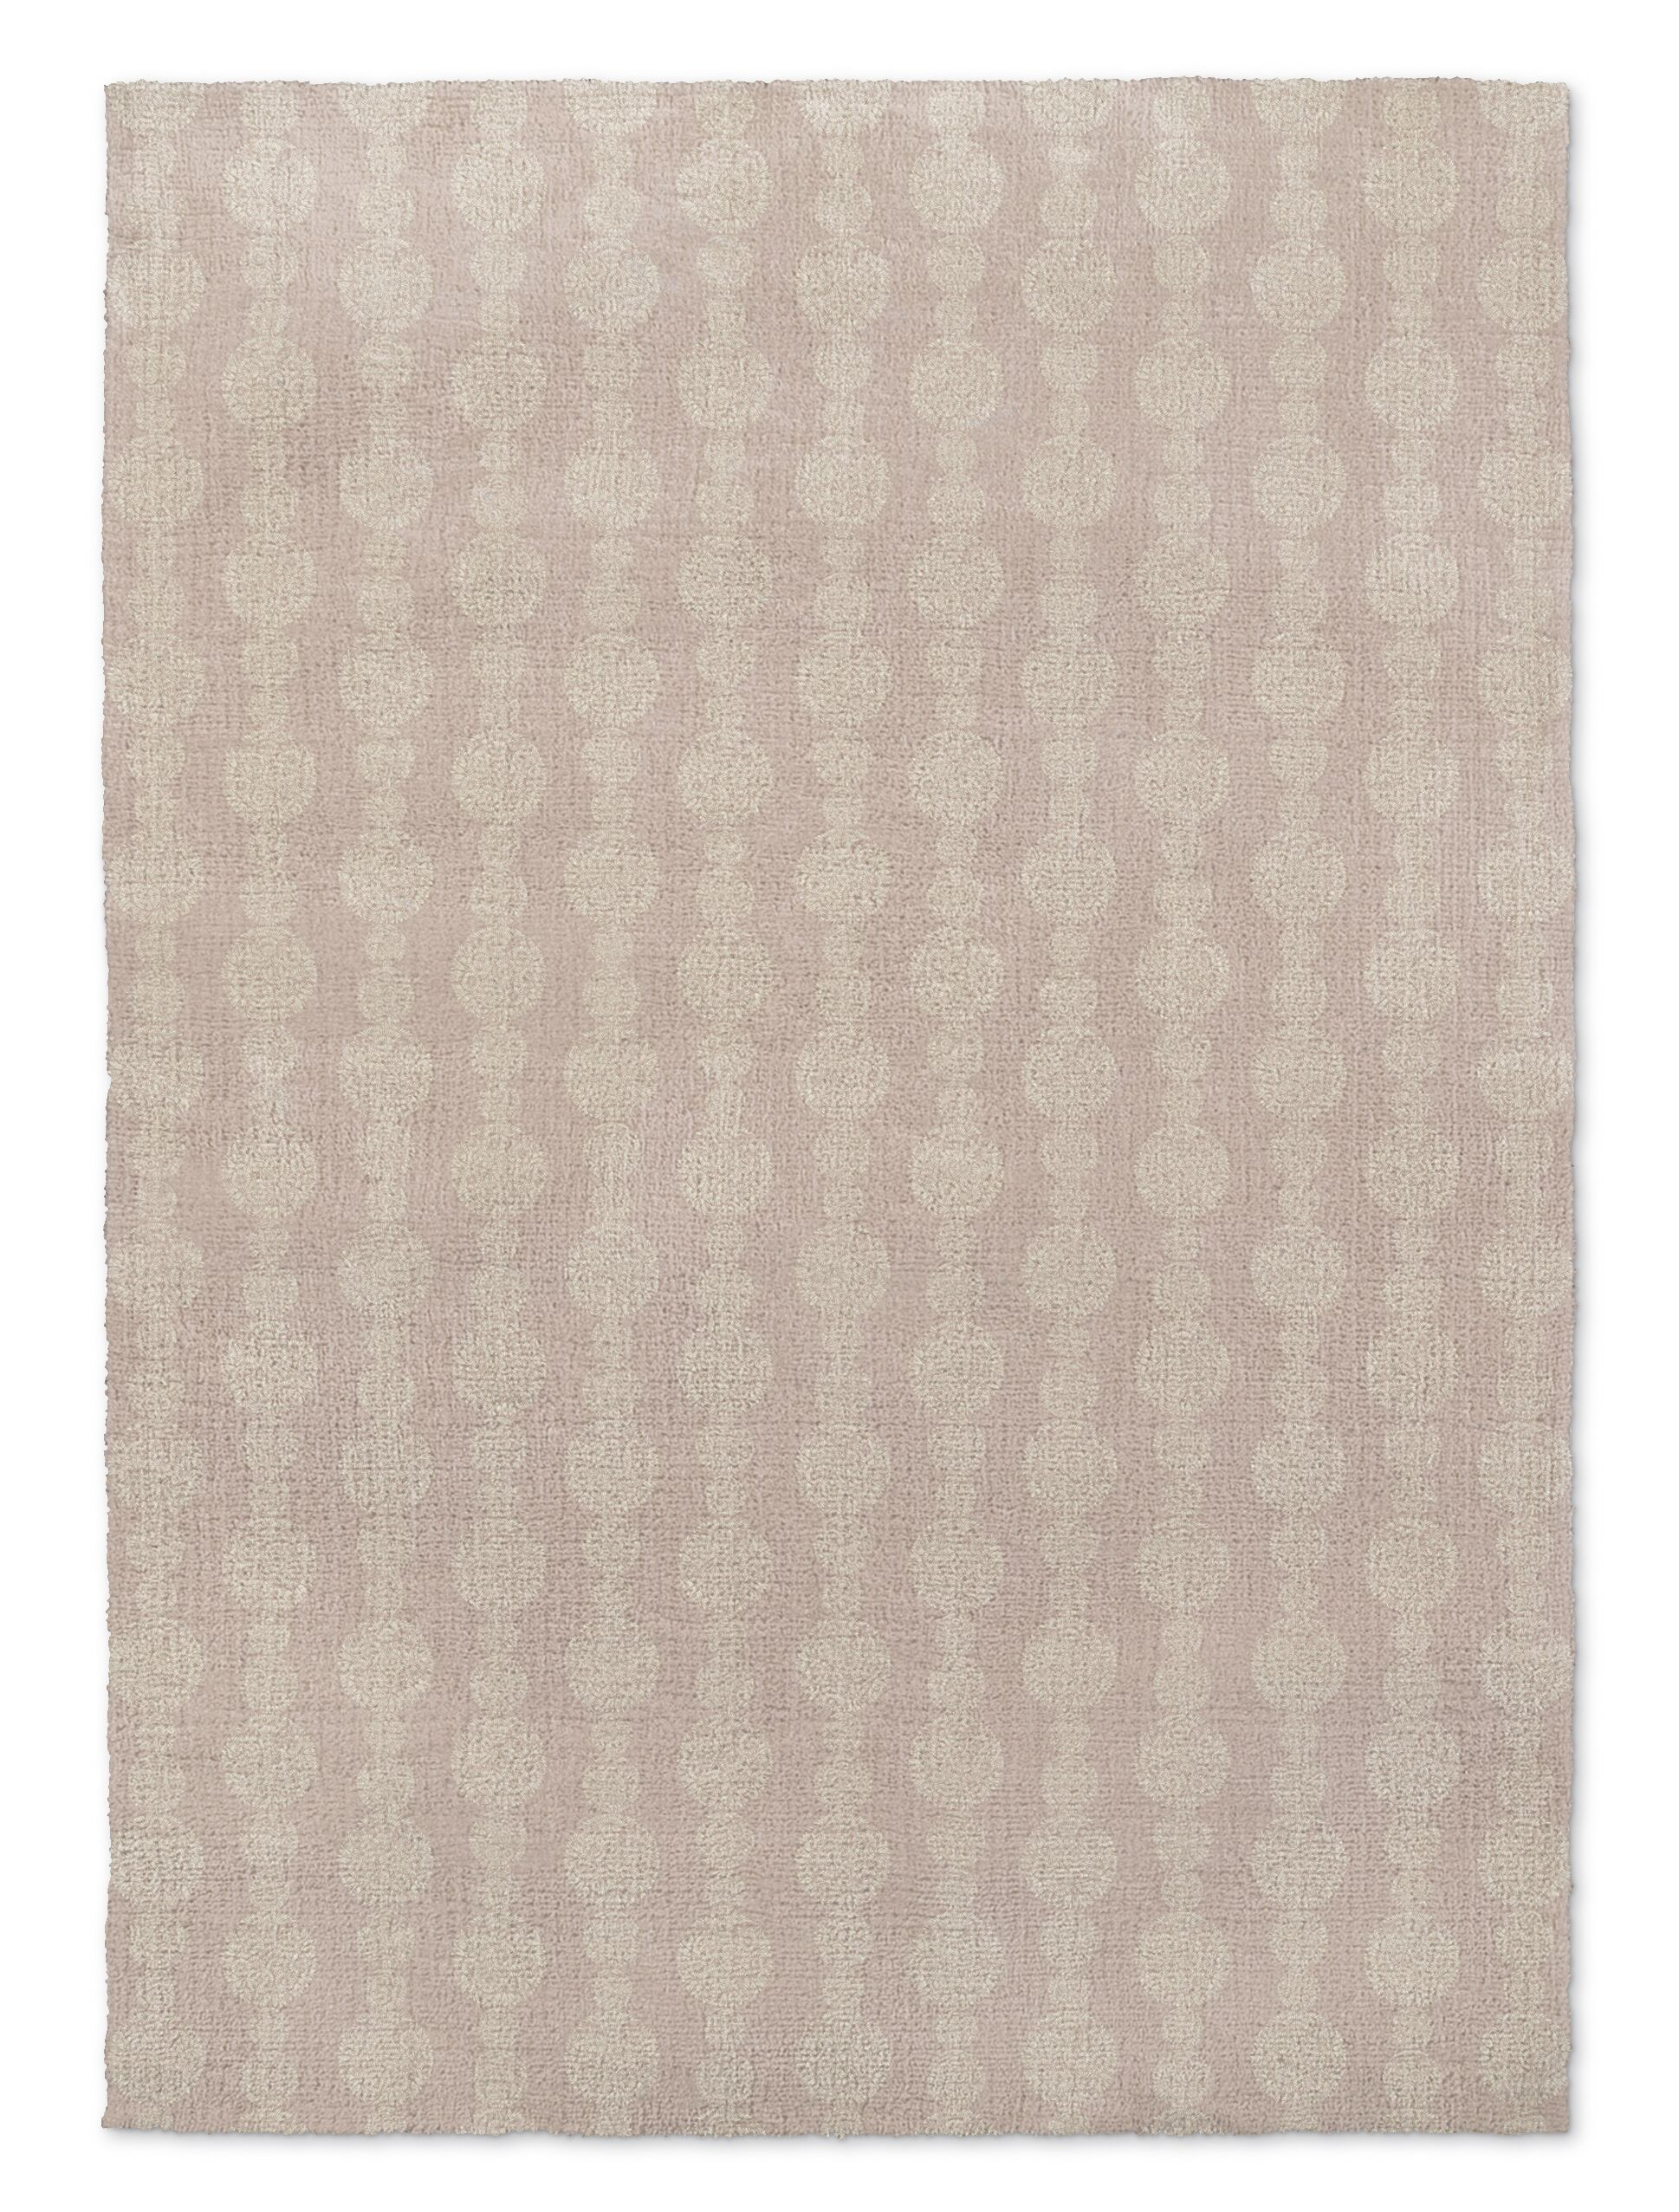 Groce Pink/Ivory Area Rug Rug Size: Rectangle 2' x 3'